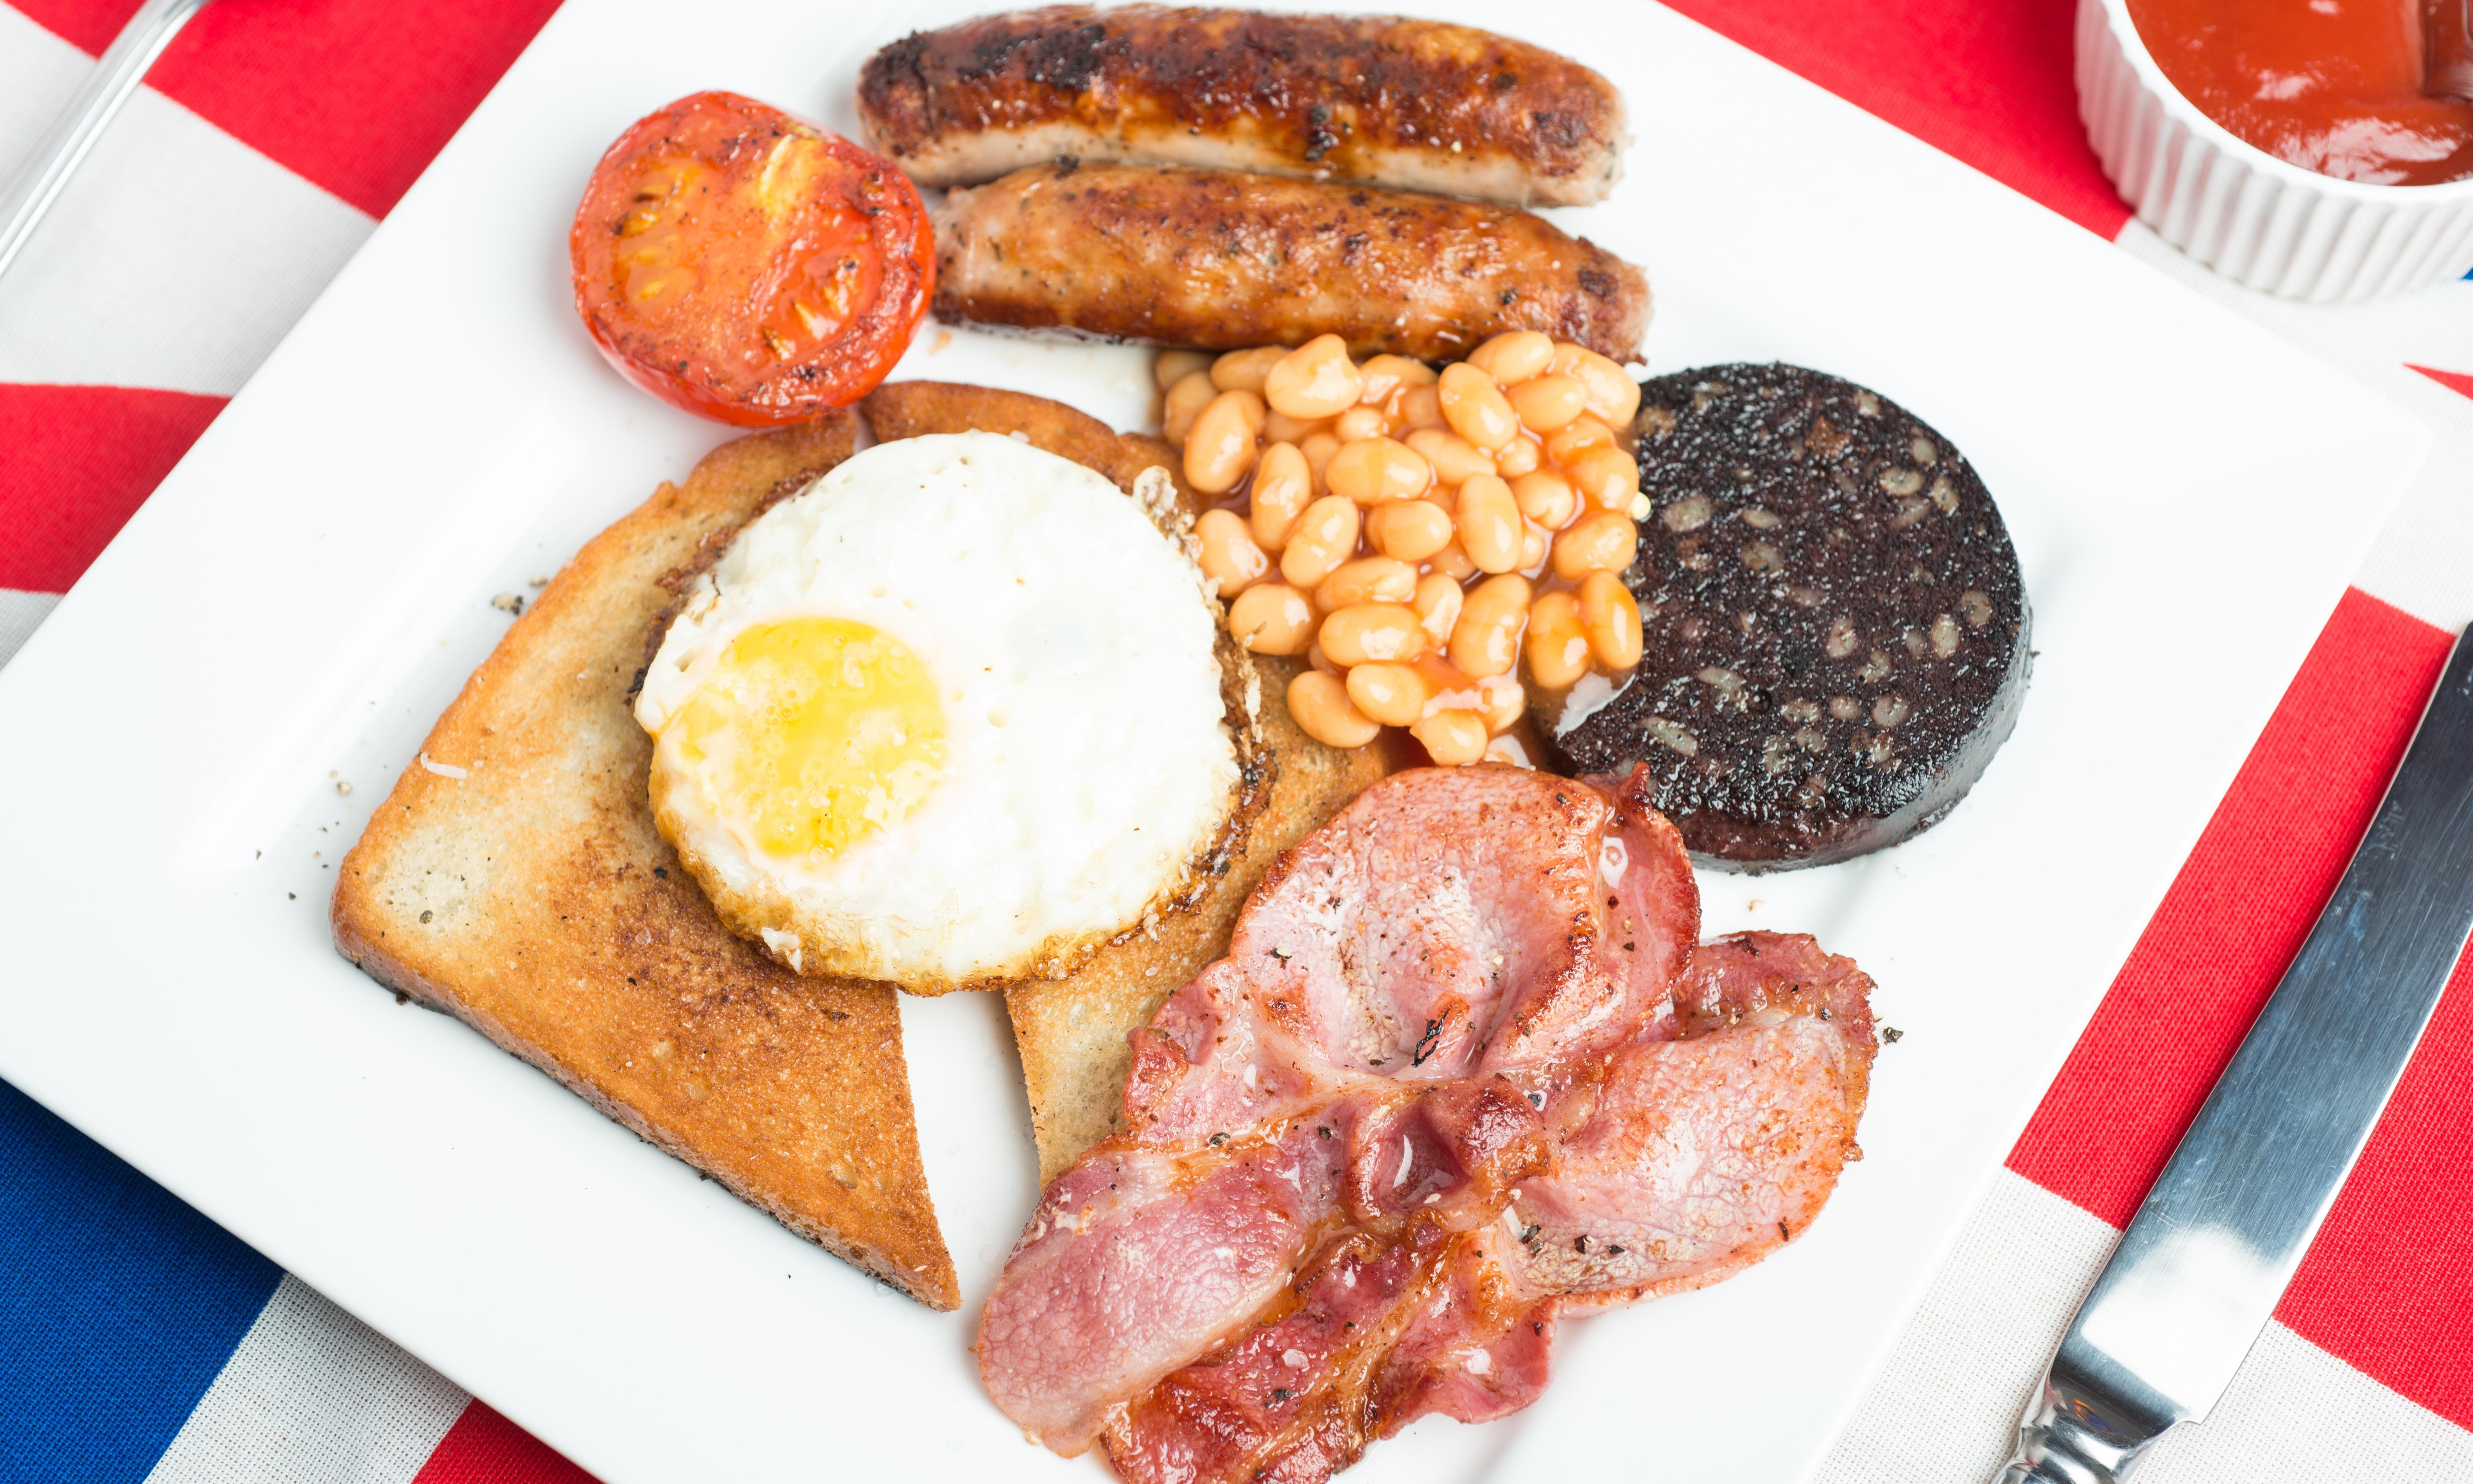 The fry-up may be toast – but, much to my own surprise, I don't really care